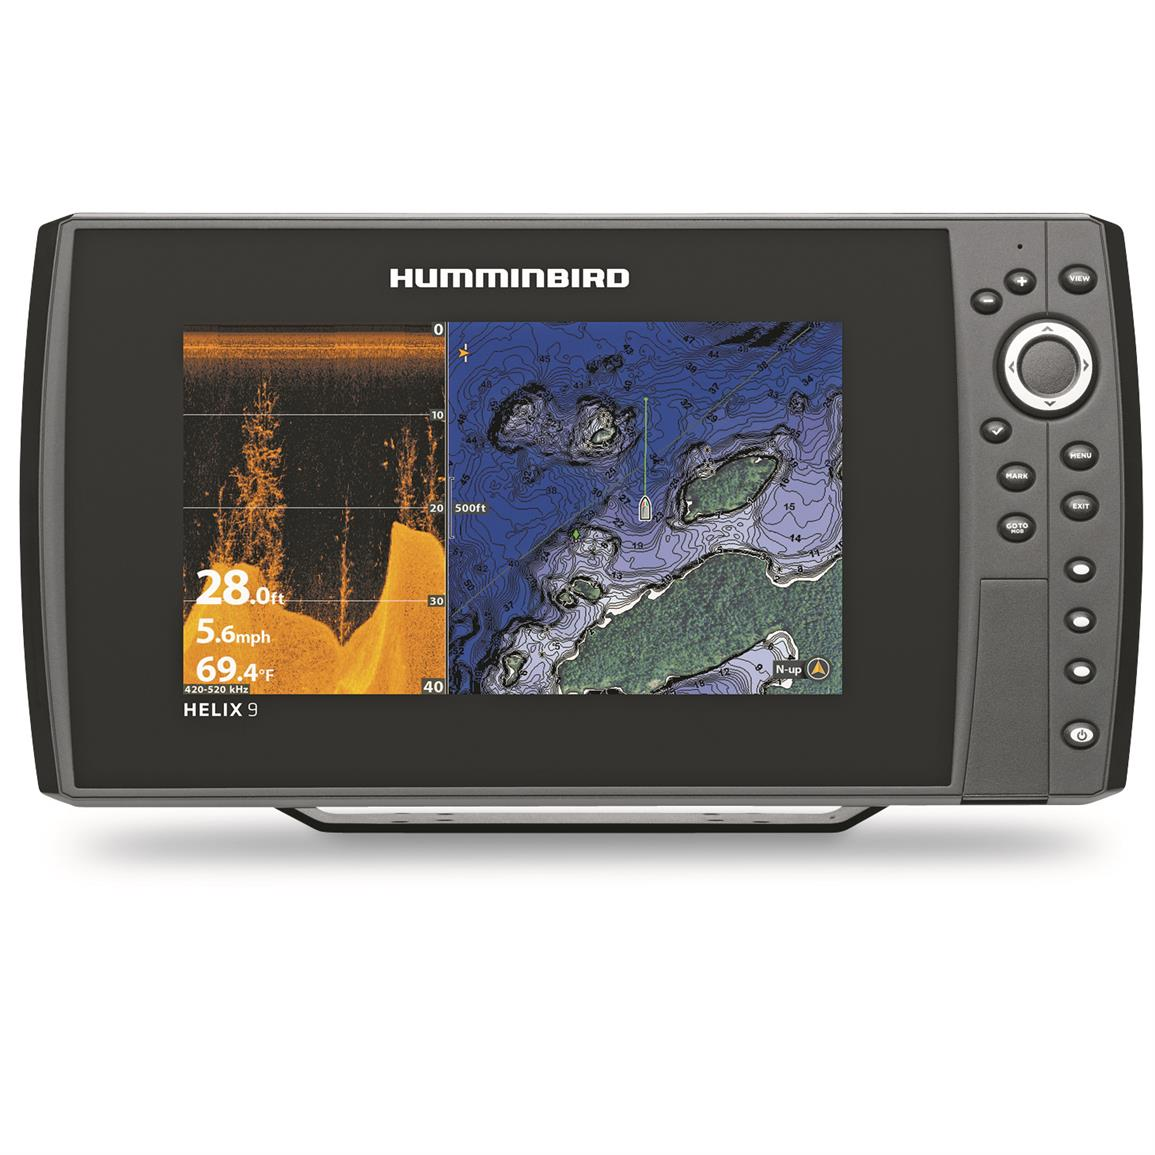 Humminbird HELIX 9 CHIRP DI GPS G2N Sonar Fish Finder